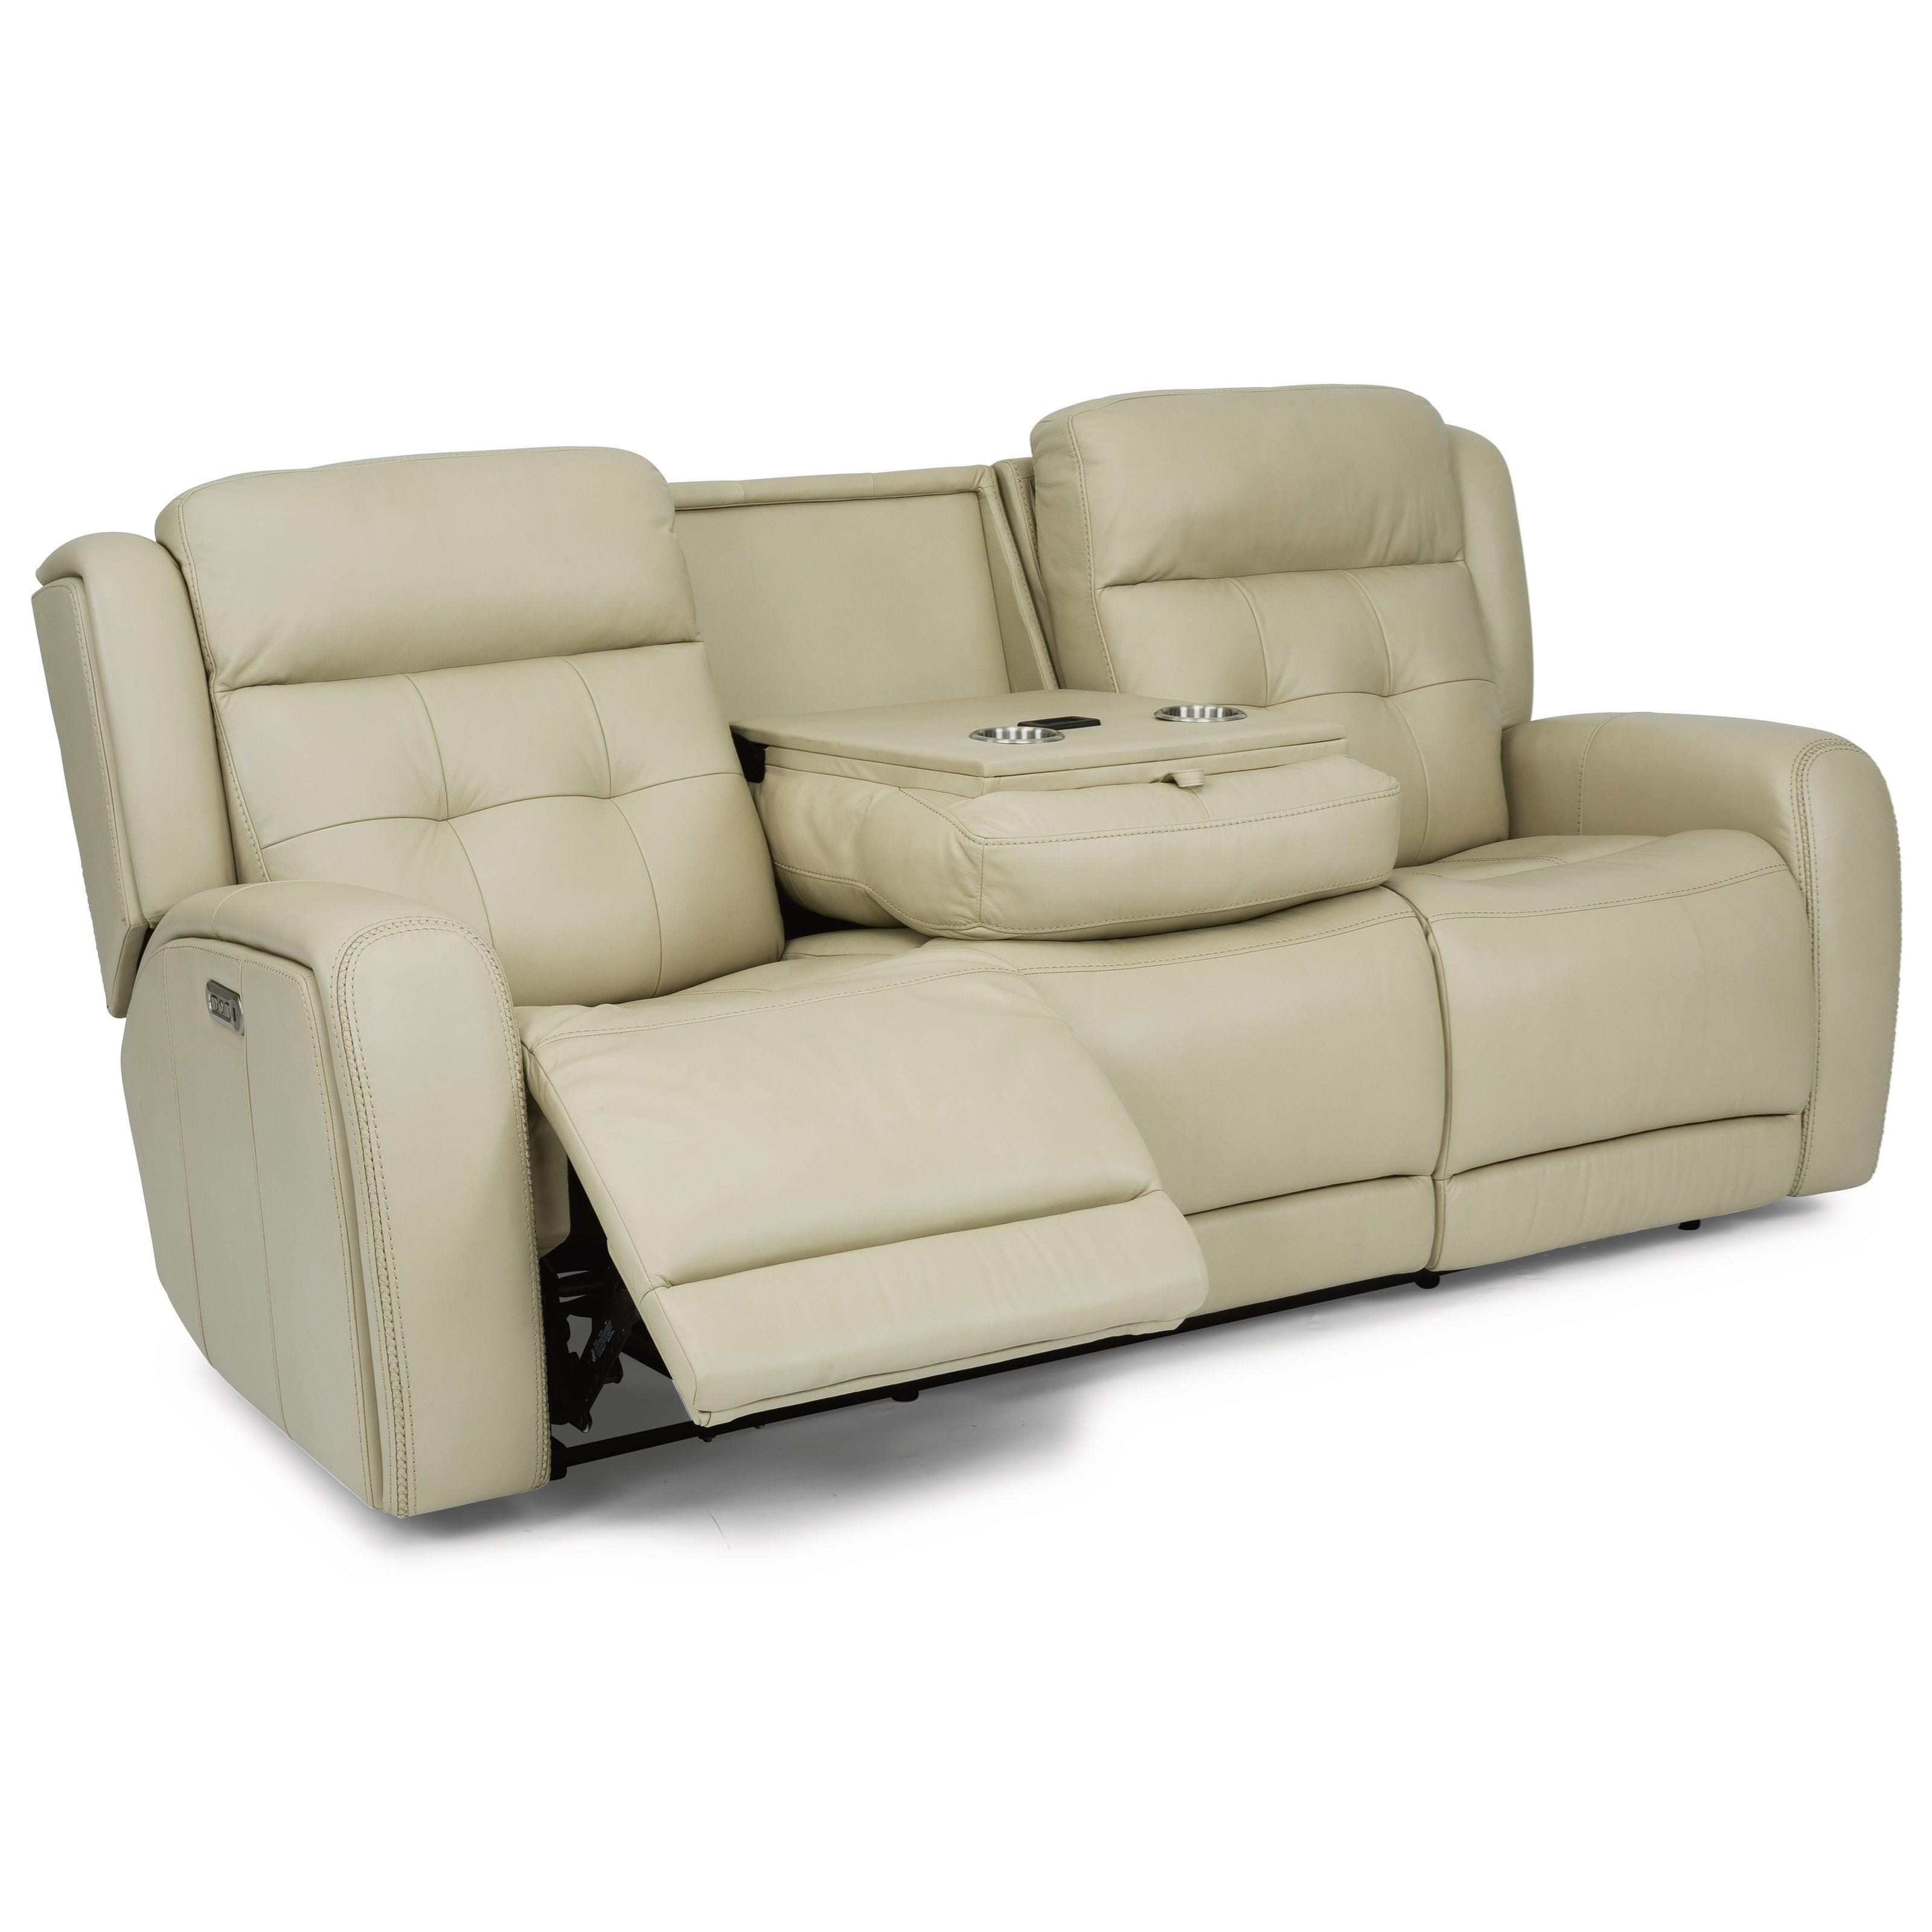 Latitudes - Grant Power Leather Match Reclining Sofa by Flexsteel at Wilcox Furniture